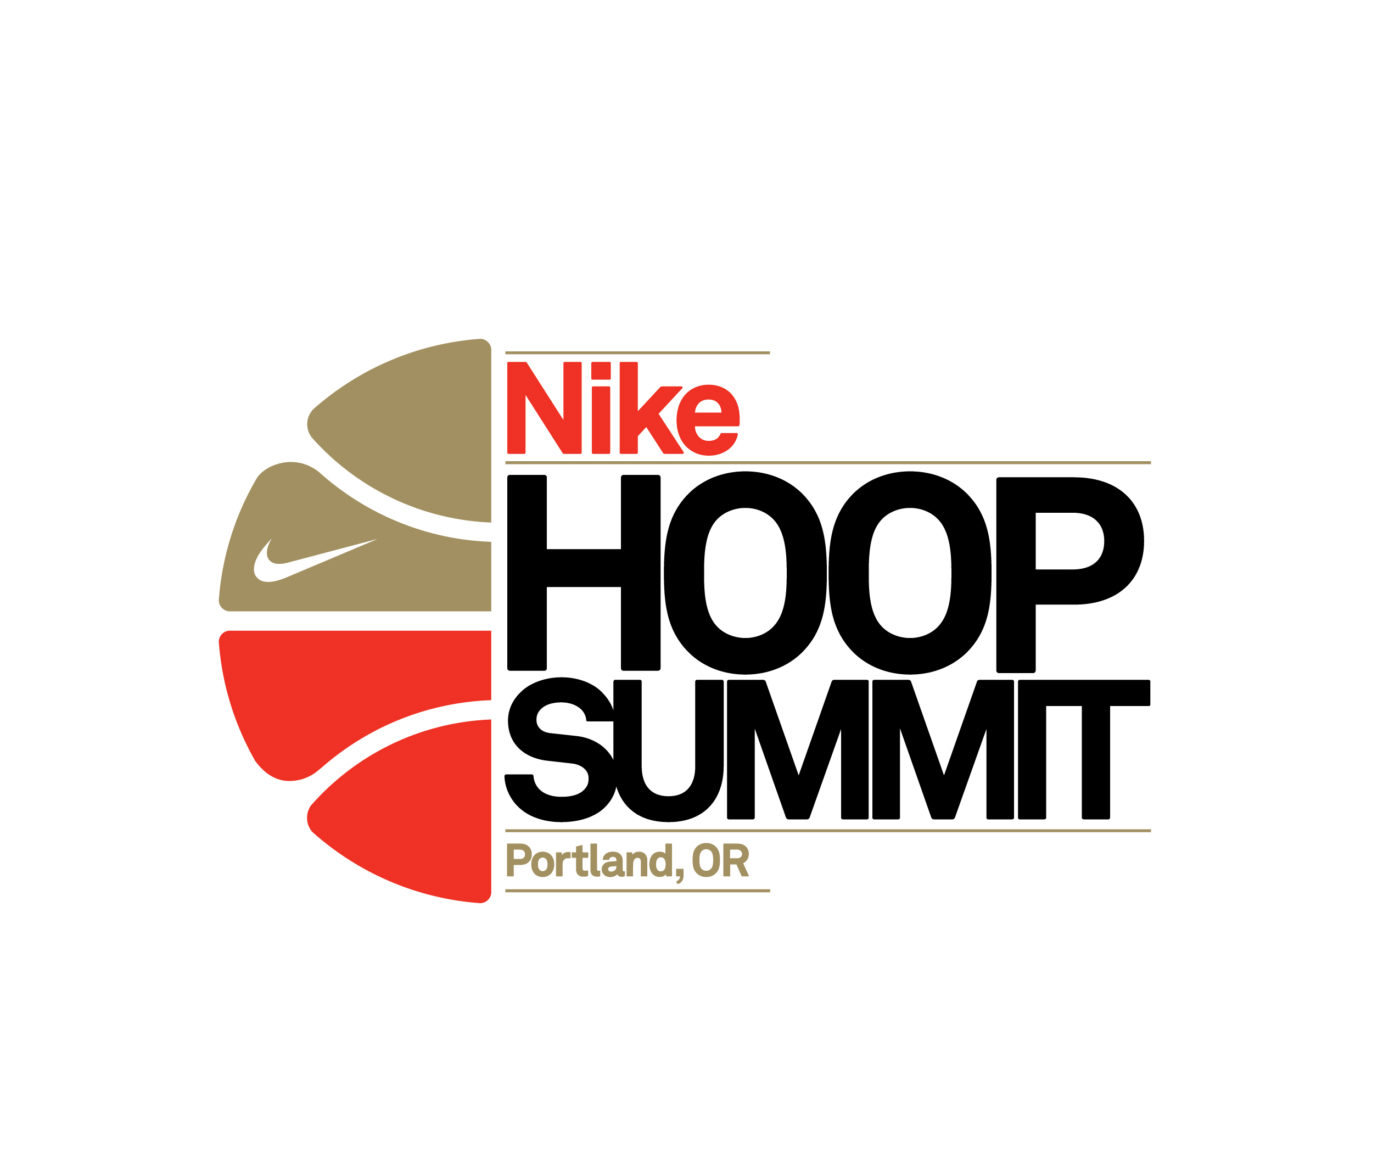 ESPN To Televise 20th Annual Nike Hoop Summit